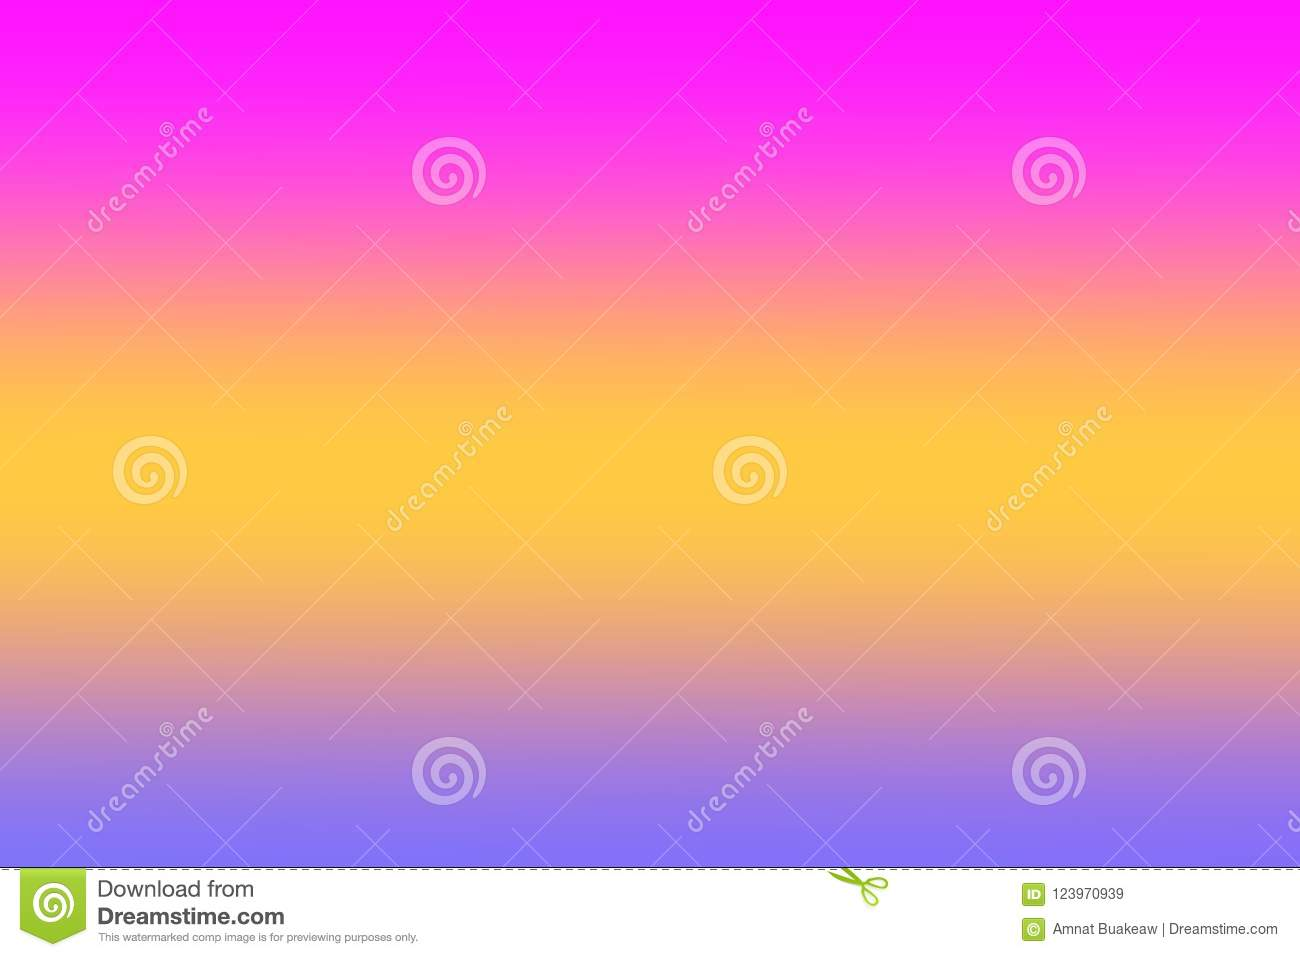 Colorful Lights Gradient Pink Blurred Soft, Sweet Color Wallpaper ...